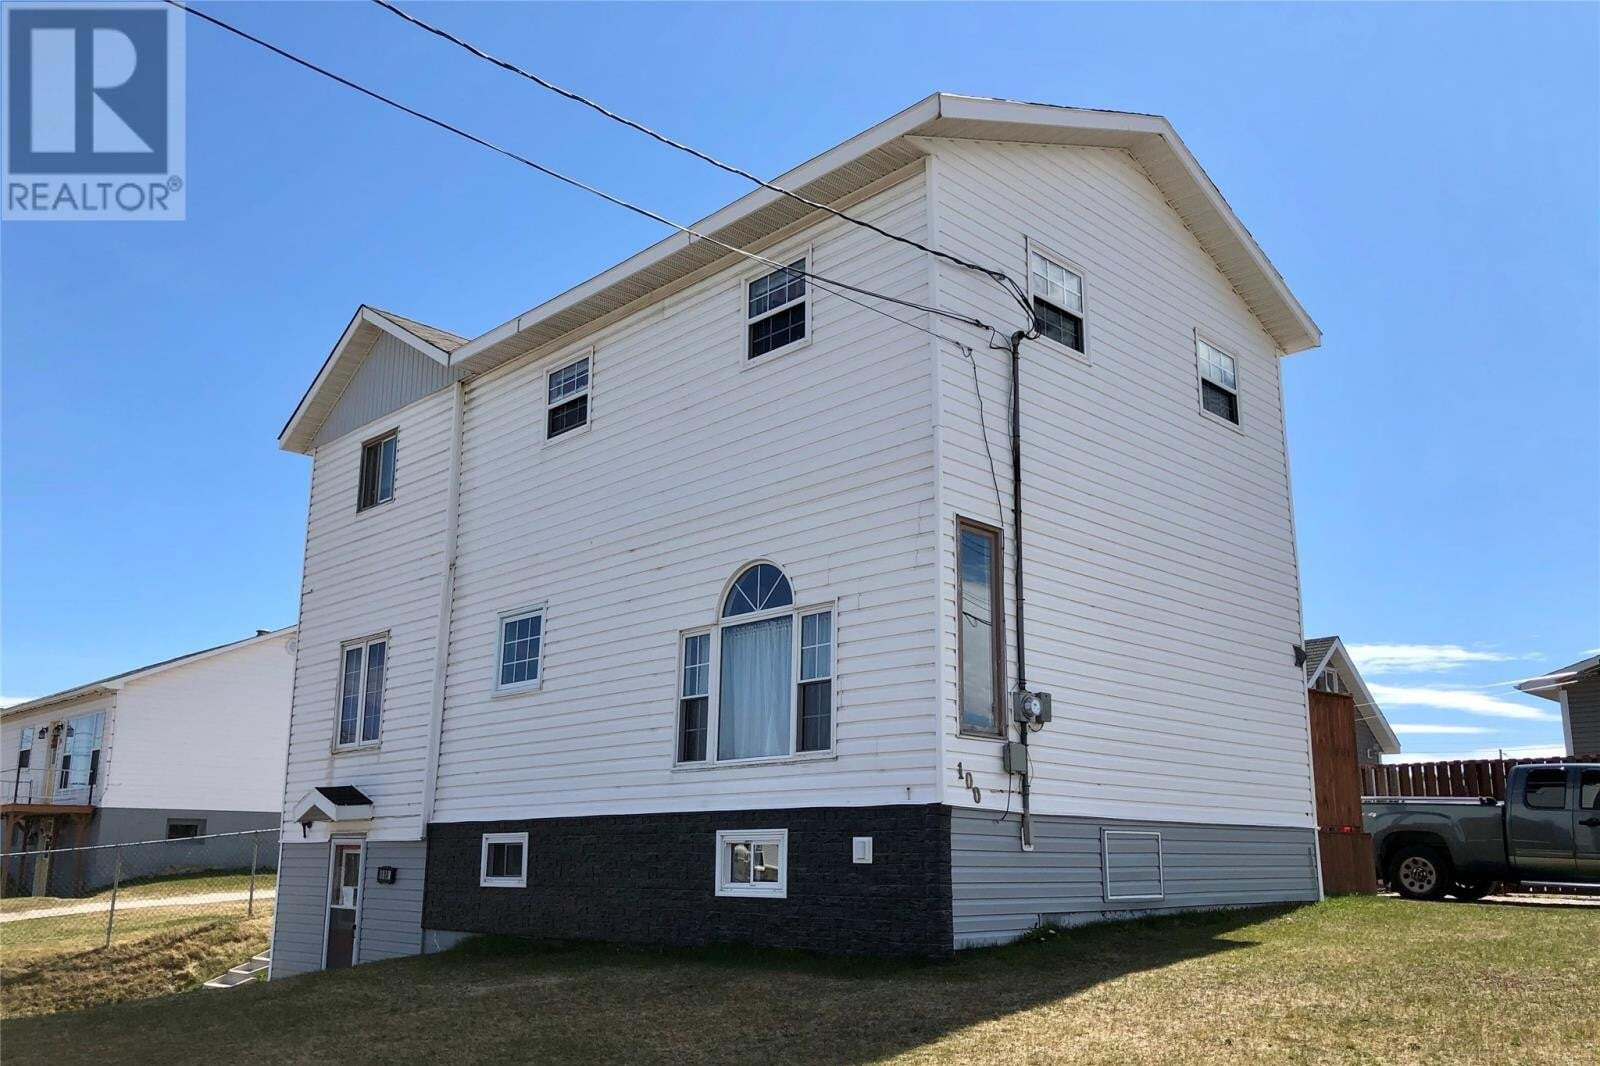 House for sale at 100 High St Deer Lake Newfoundland - MLS: 1213621